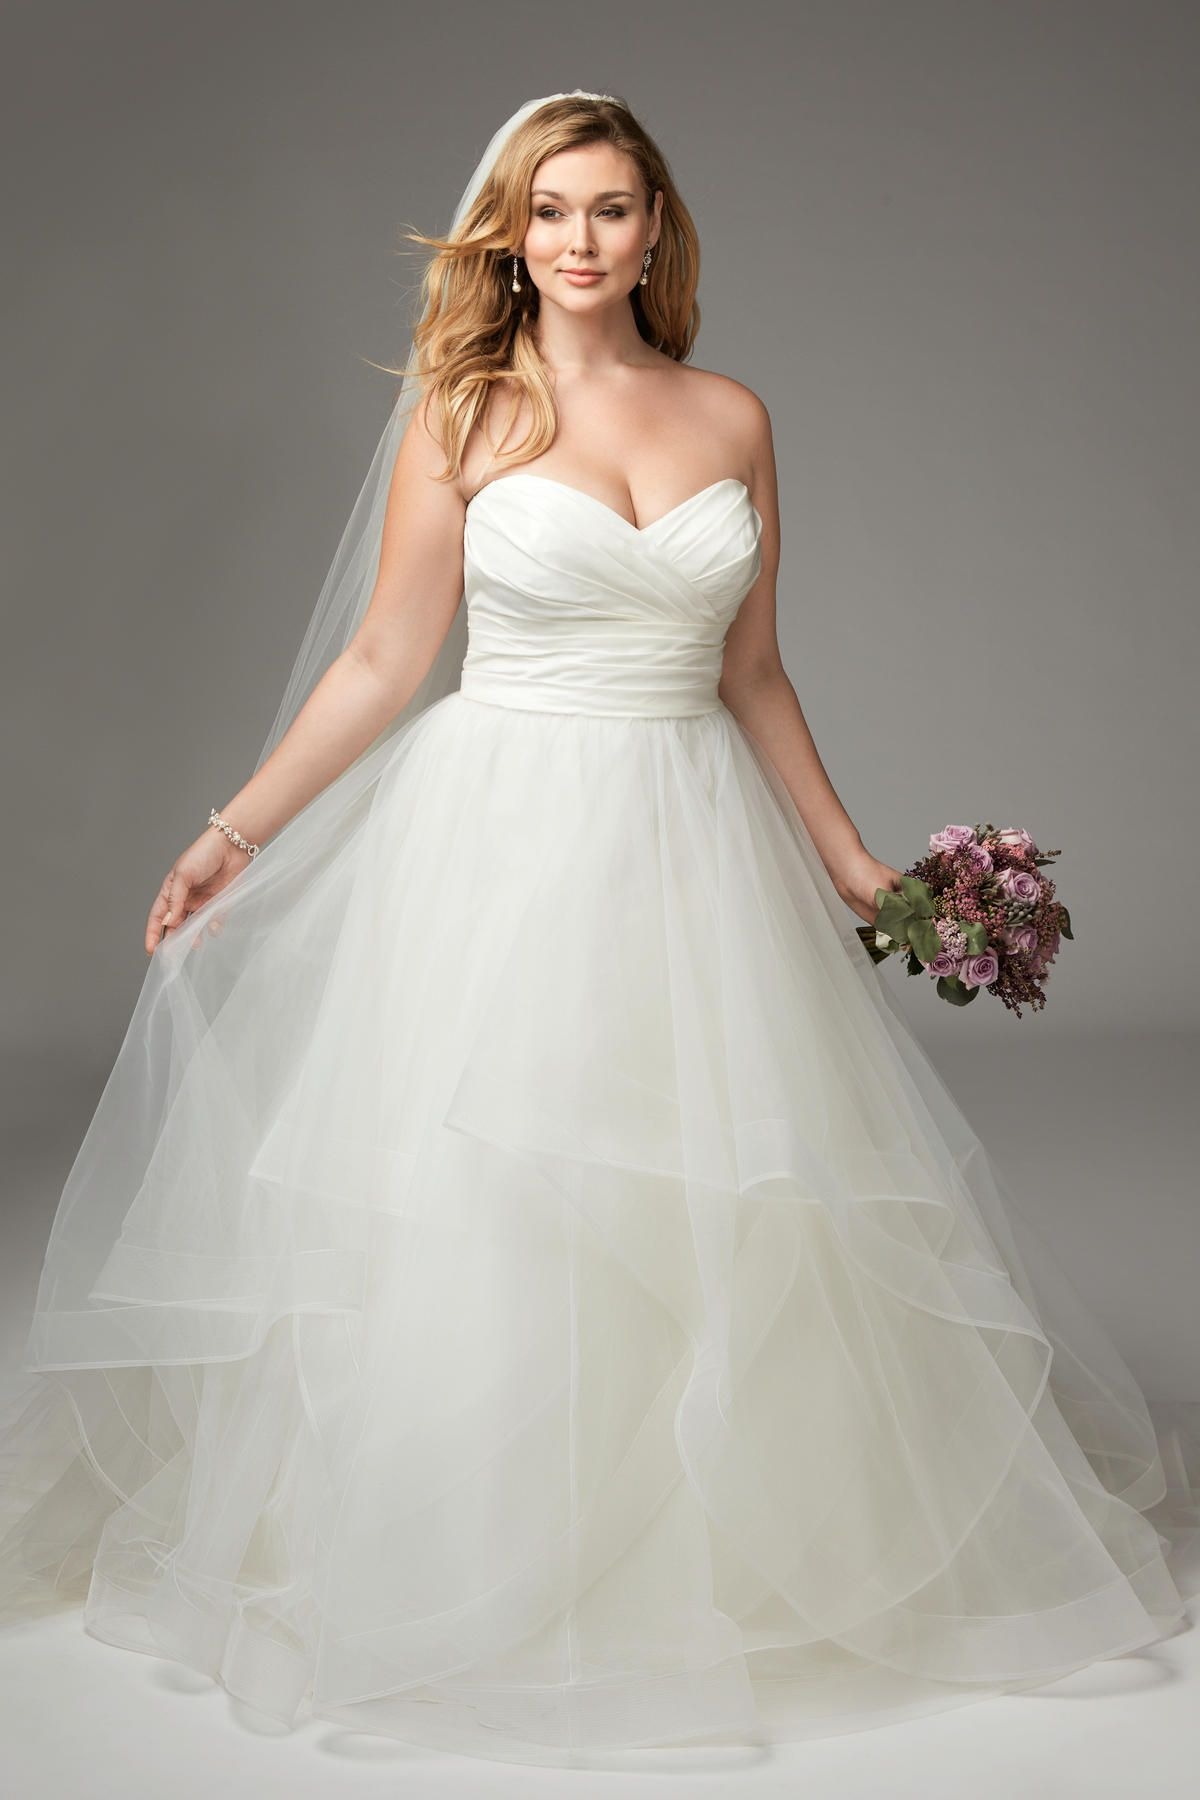 This Wtoo 14430 Selena A Line Plus Size Bridal Dress Offers A Pleated Sweetheart Bodice In Plus Size Bridal Dresses Plus Size Wedding Wedding Dresses Plus Size [ 1800 x 1200 Pixel ]